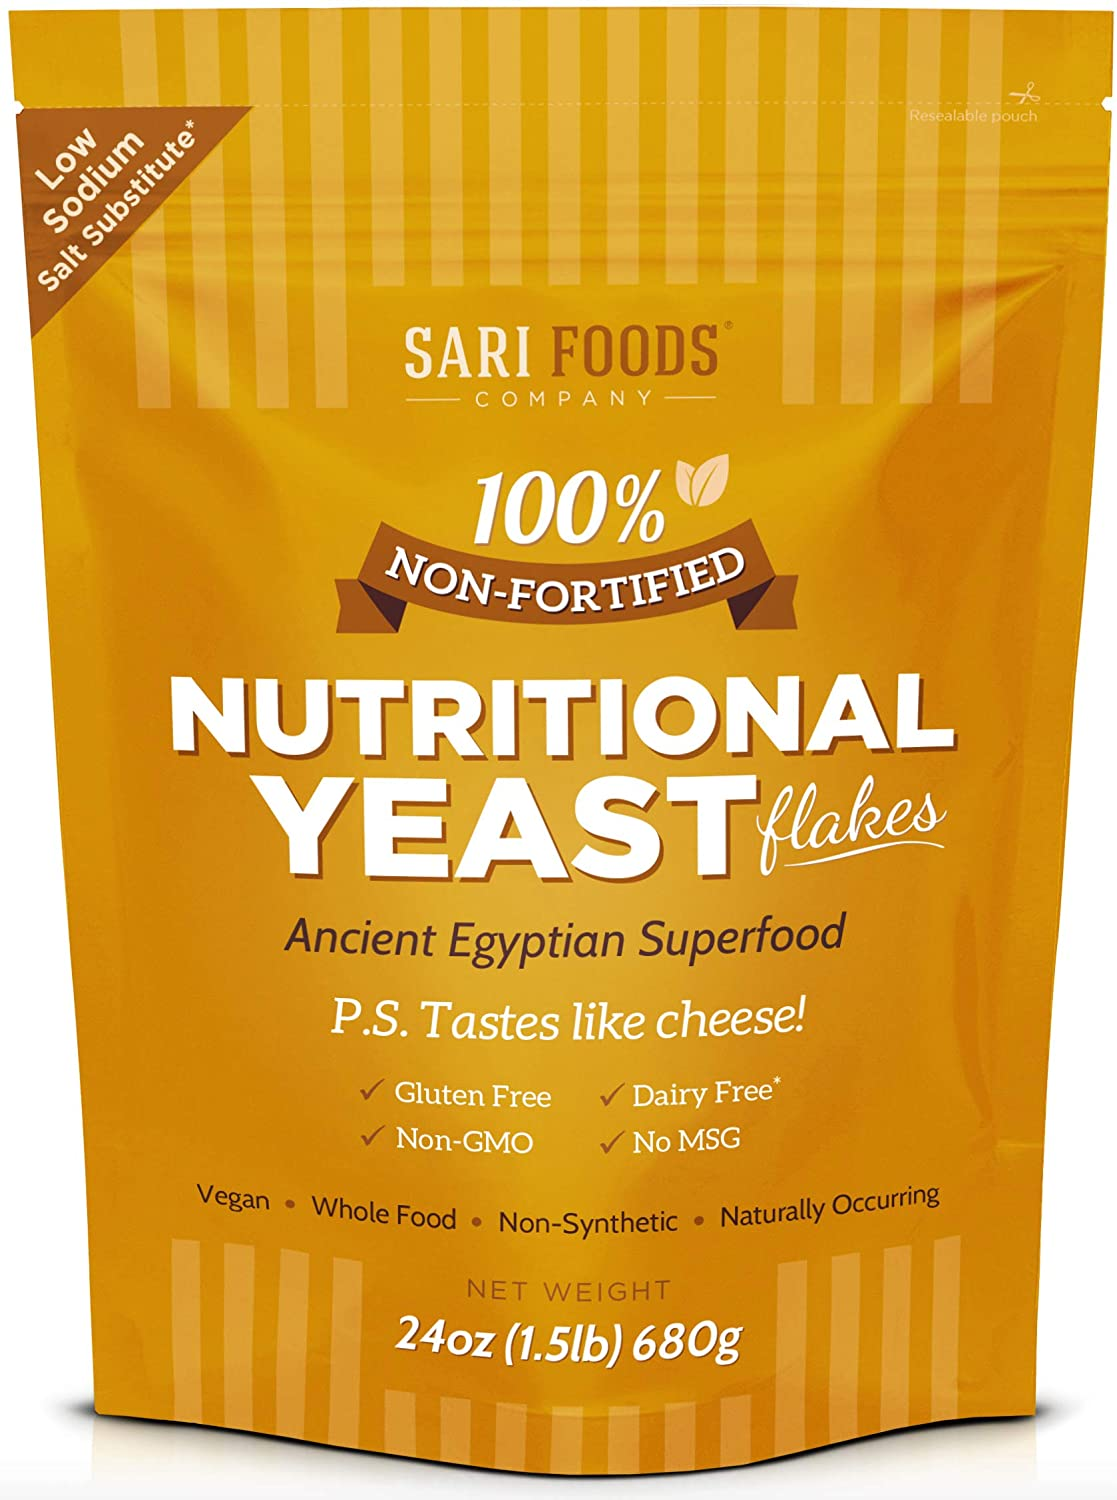 Natural Non-Fortified Nutritional Yeast Flakes 24 oz. Whole Food Based Protein Powder, Vitamin B Complex, Beta-glucans and 18 Amino Acids